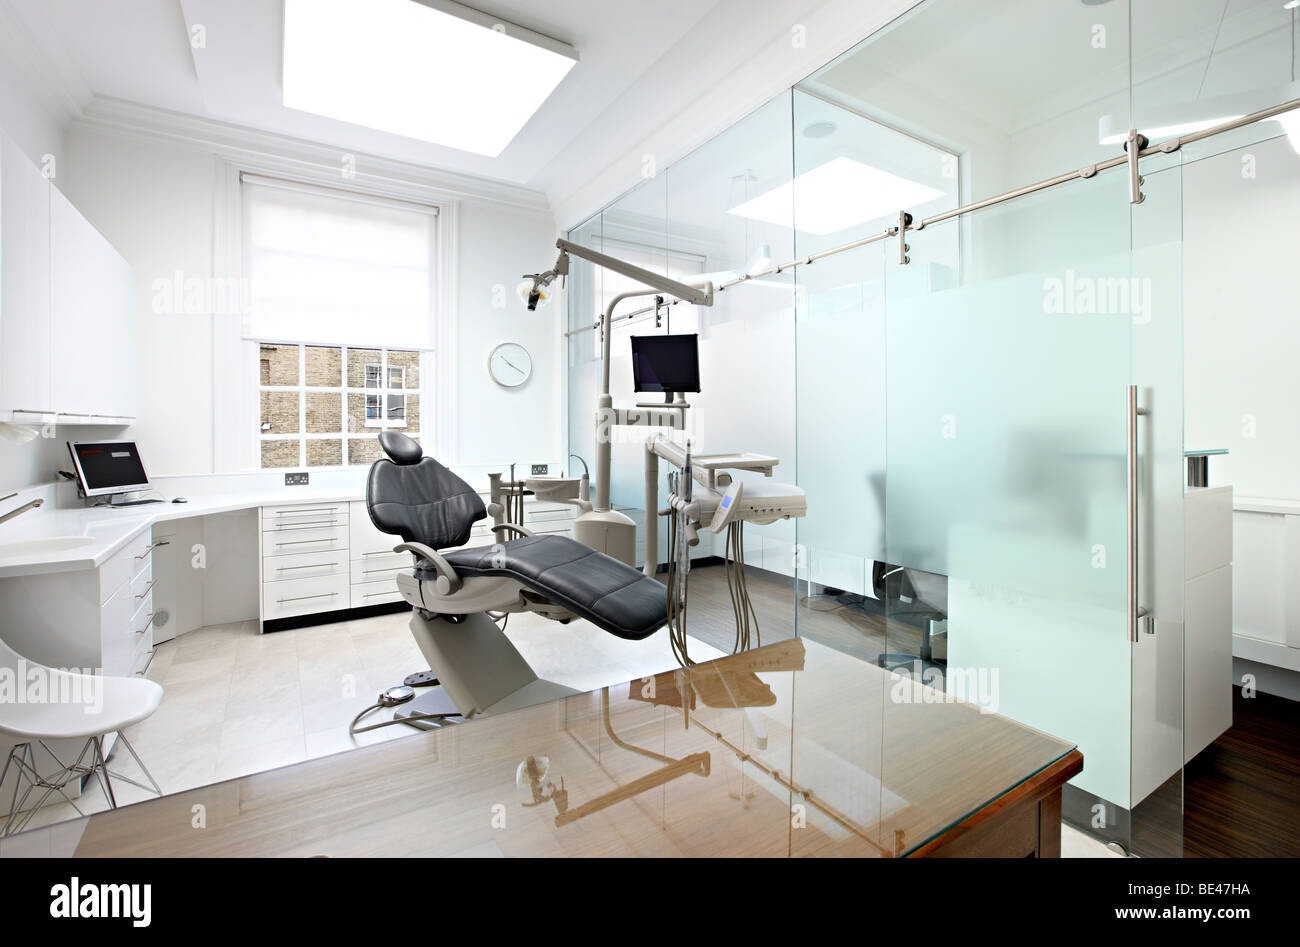 Modern designed dentist surgery hygienic - Stock Image